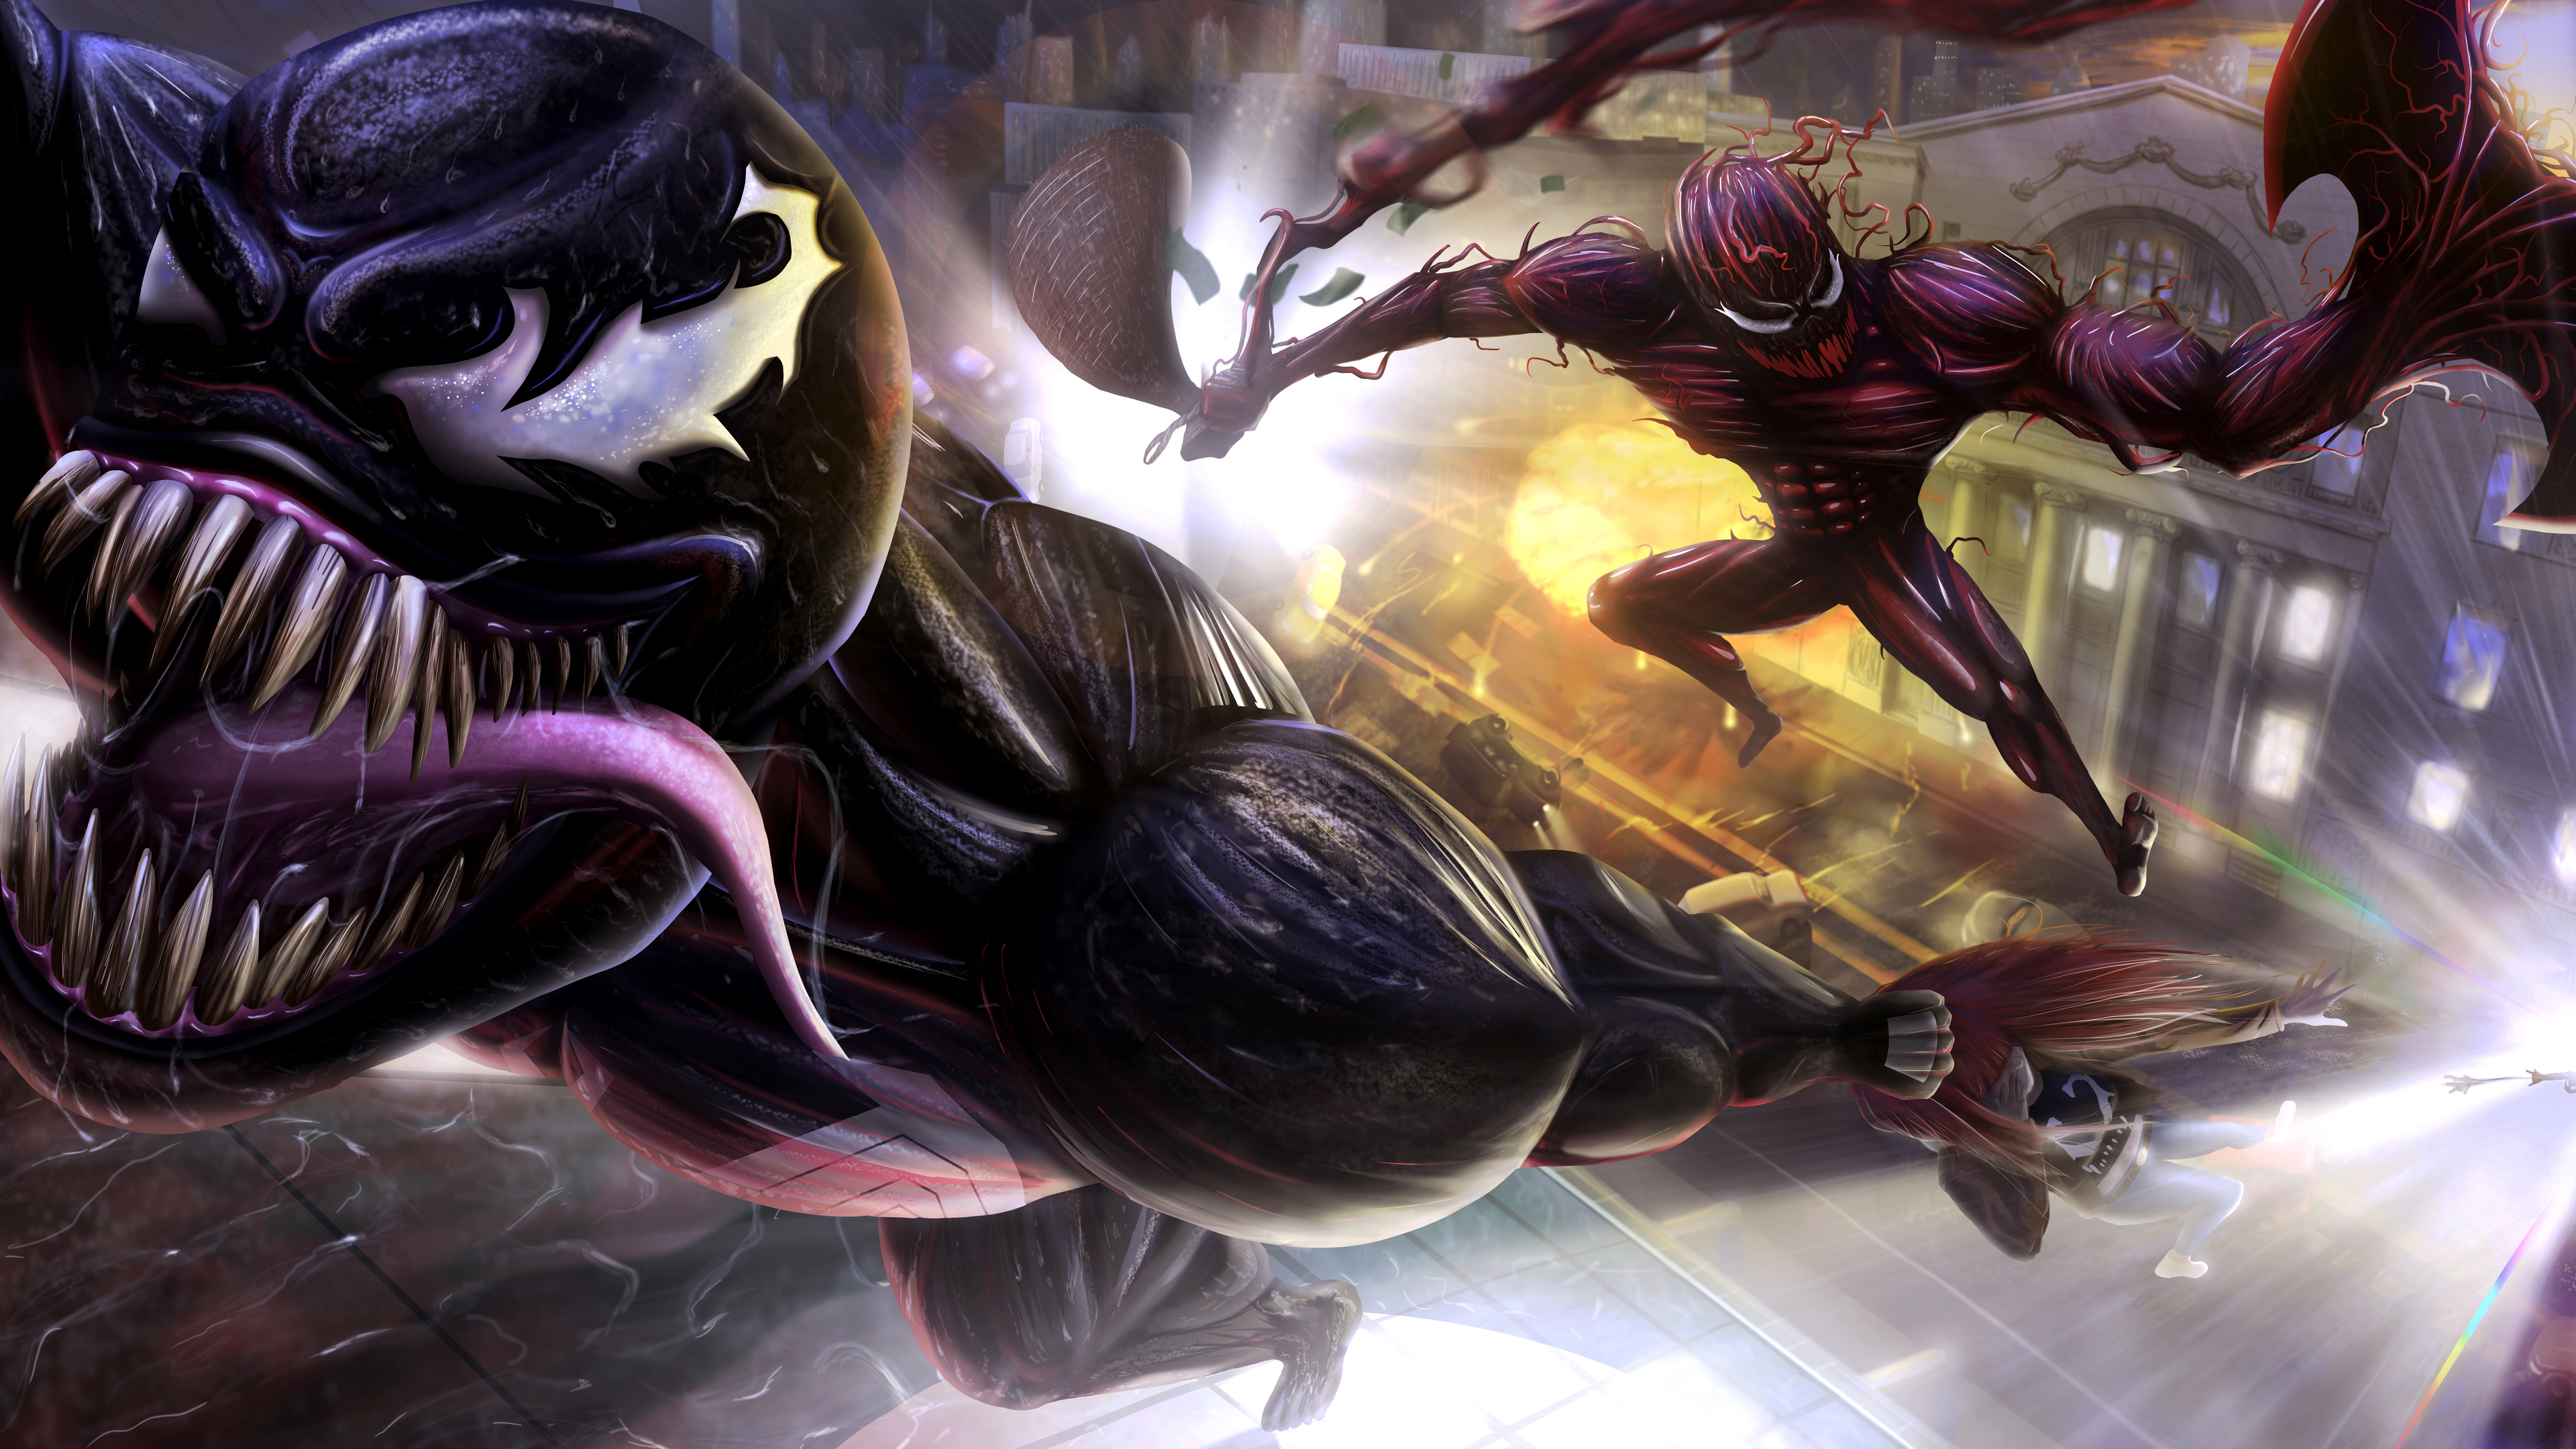 venom and carnage 10k 1538786552 - Venom And Carnage 10k - Venom wallpapers, supervillain wallpapers, superheroes wallpapers, hd-wallpapers, digital art wallpapers, deviantart wallpapers, carnage wallpapers, artwork wallpapers, 8k wallpapers, 5k wallpapers, 4k-wallpapers, 10k wallpapers